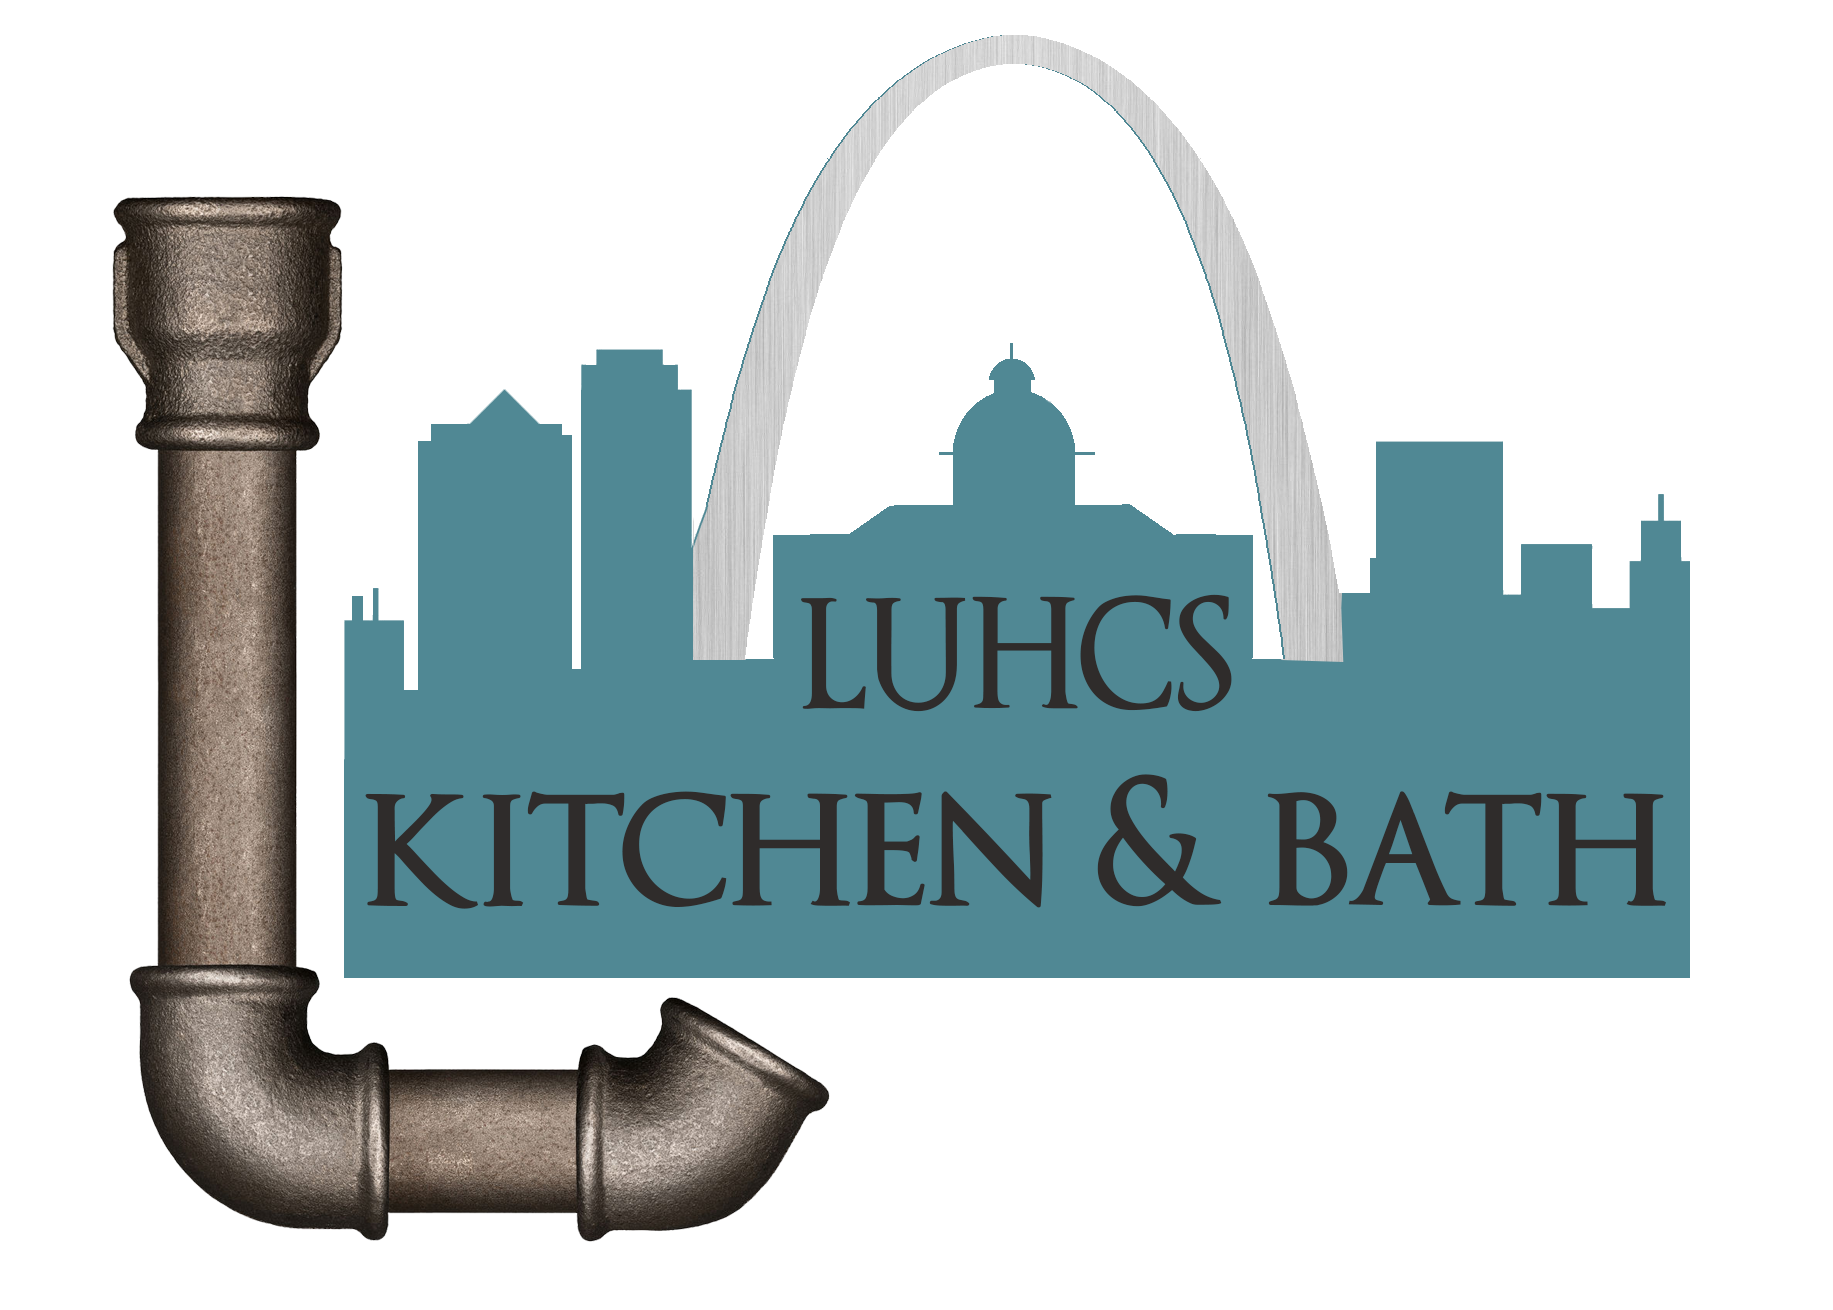 Luhcs Kitchen Bath